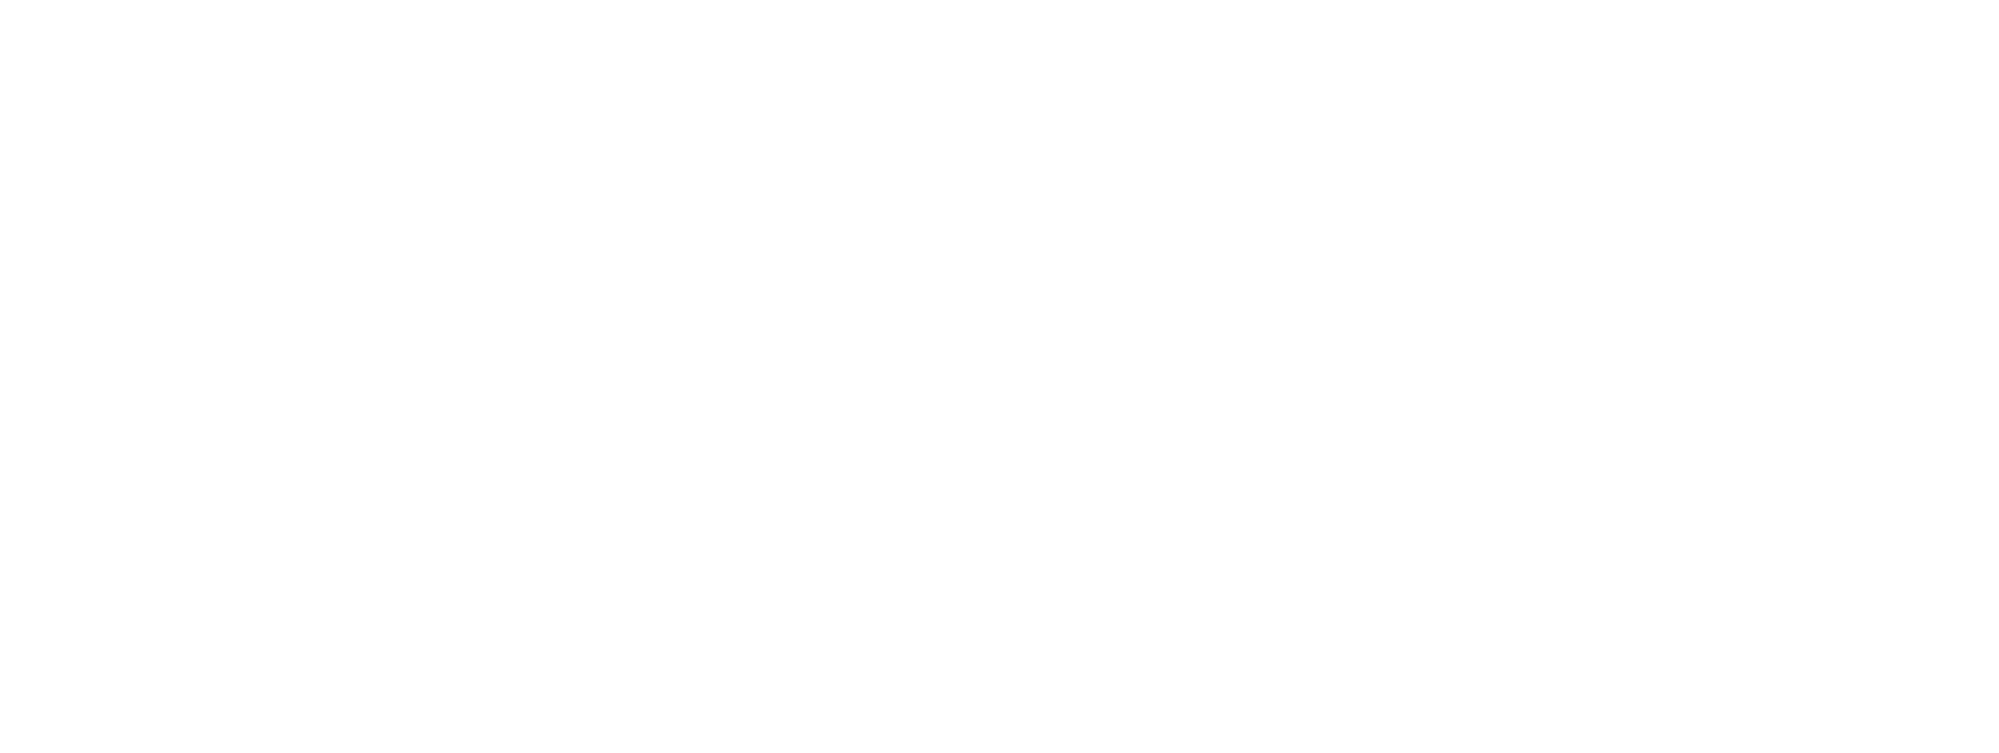 Complete Property Maintenance | Professional Property Cleaning Service